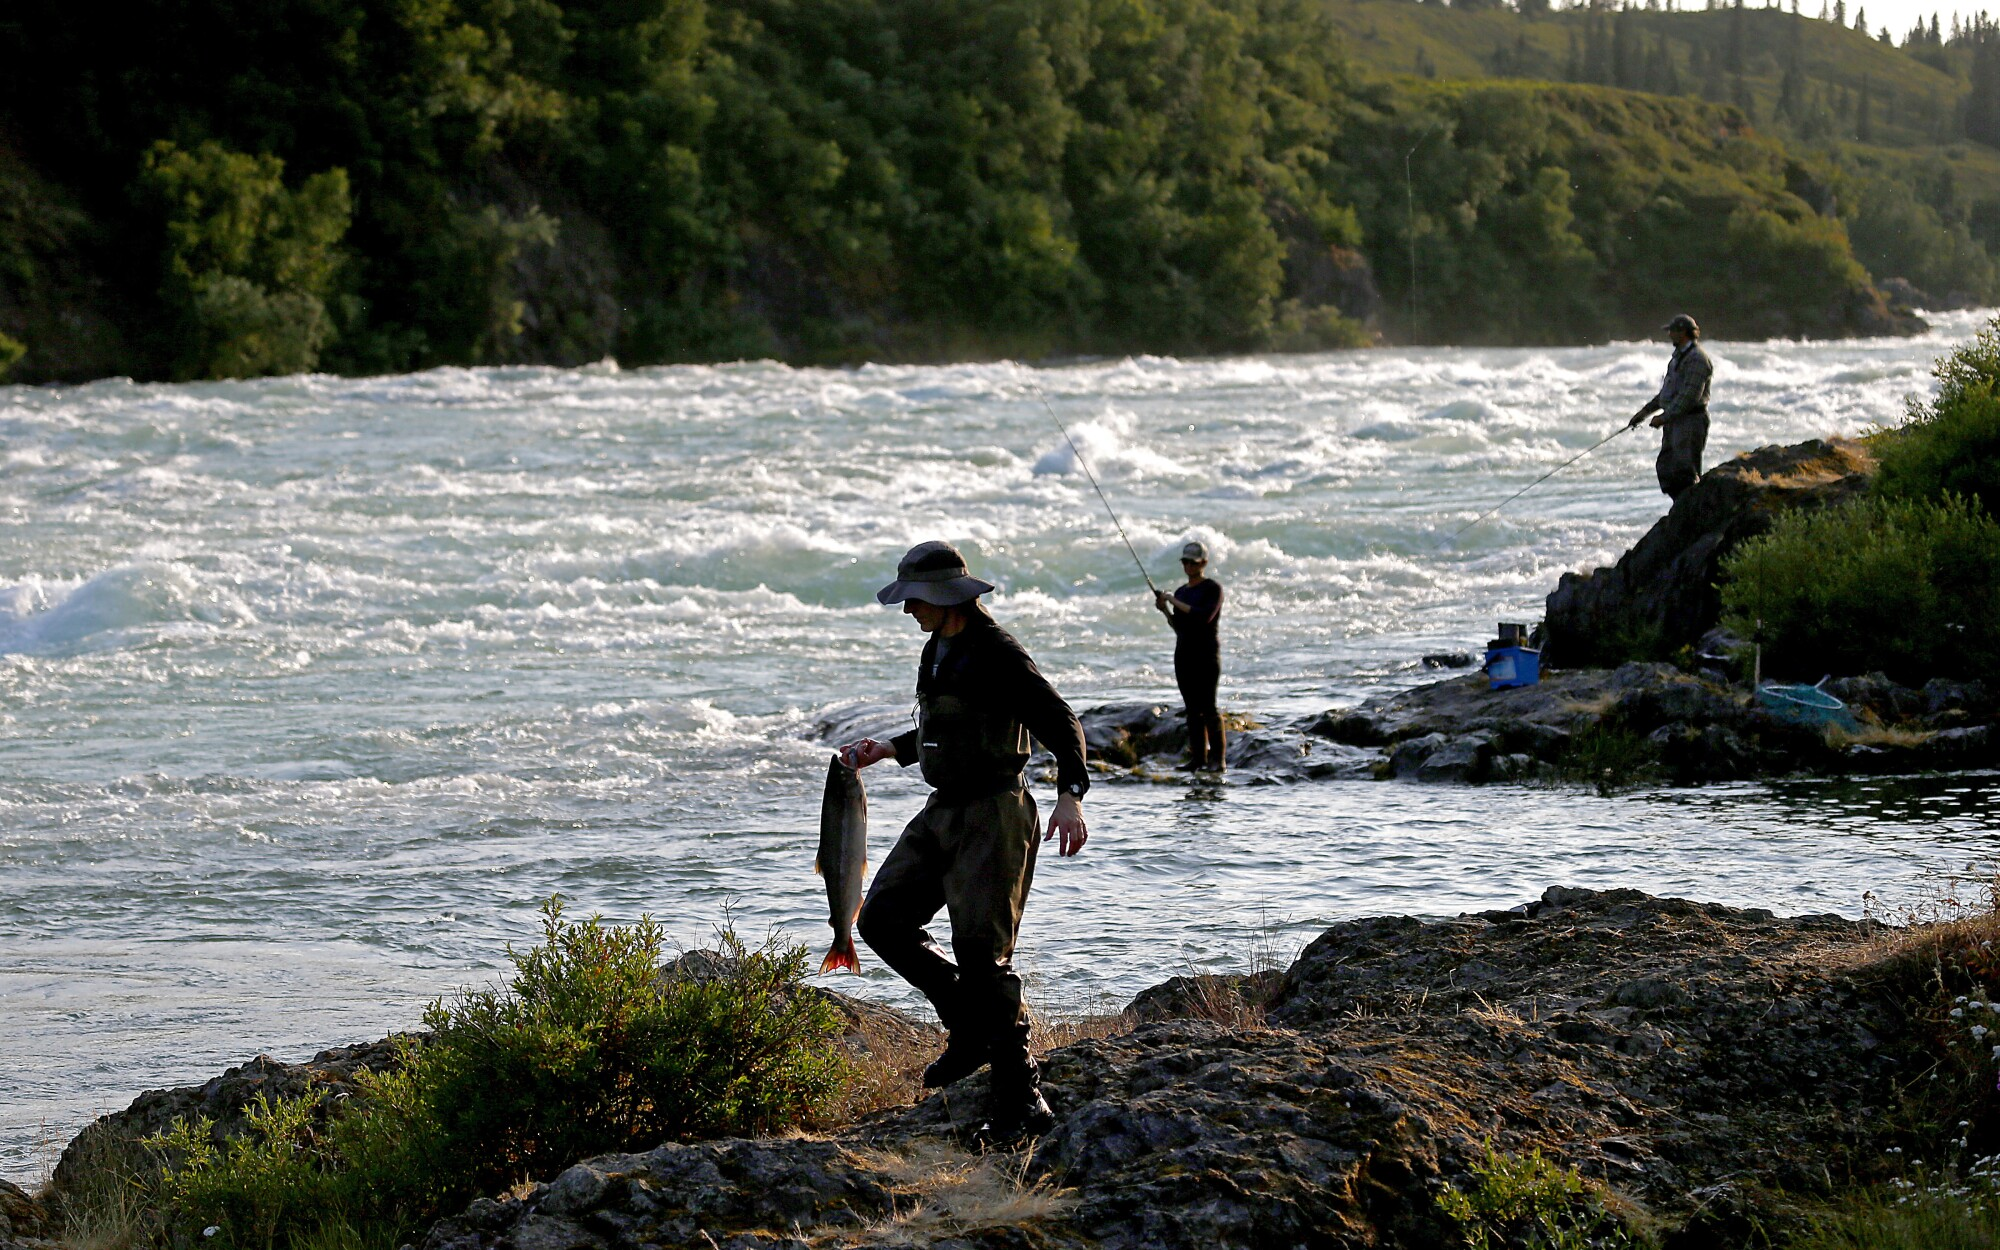 Fishing for sockeye salmon in the Newhalen River near Iliamna, Alaska.